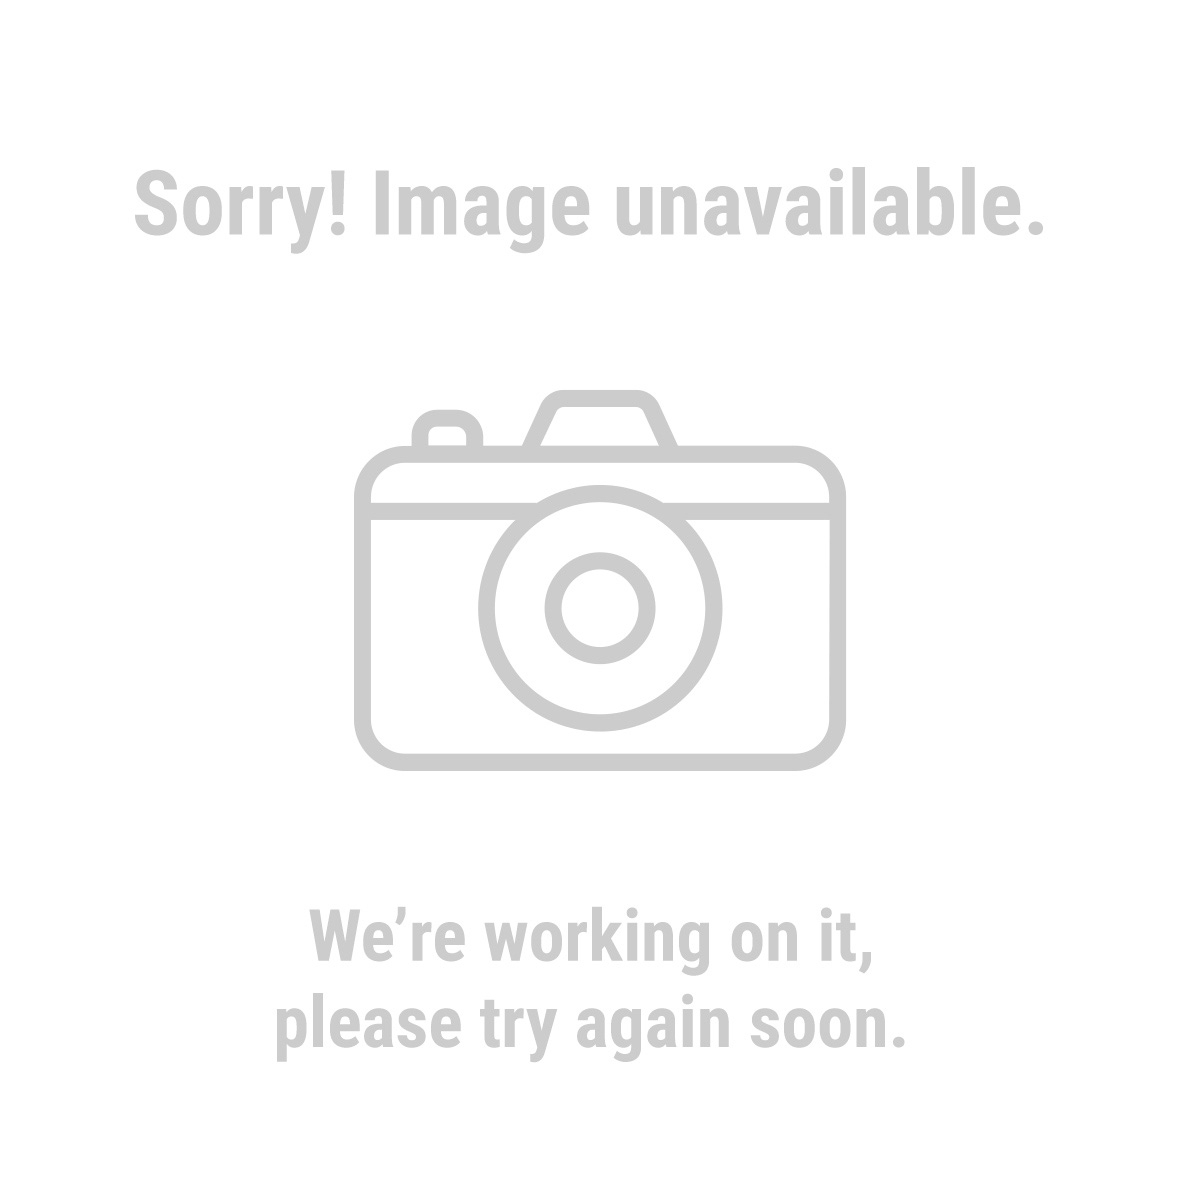 Pittsburgh 93424 8 Piece Pin Punch Set